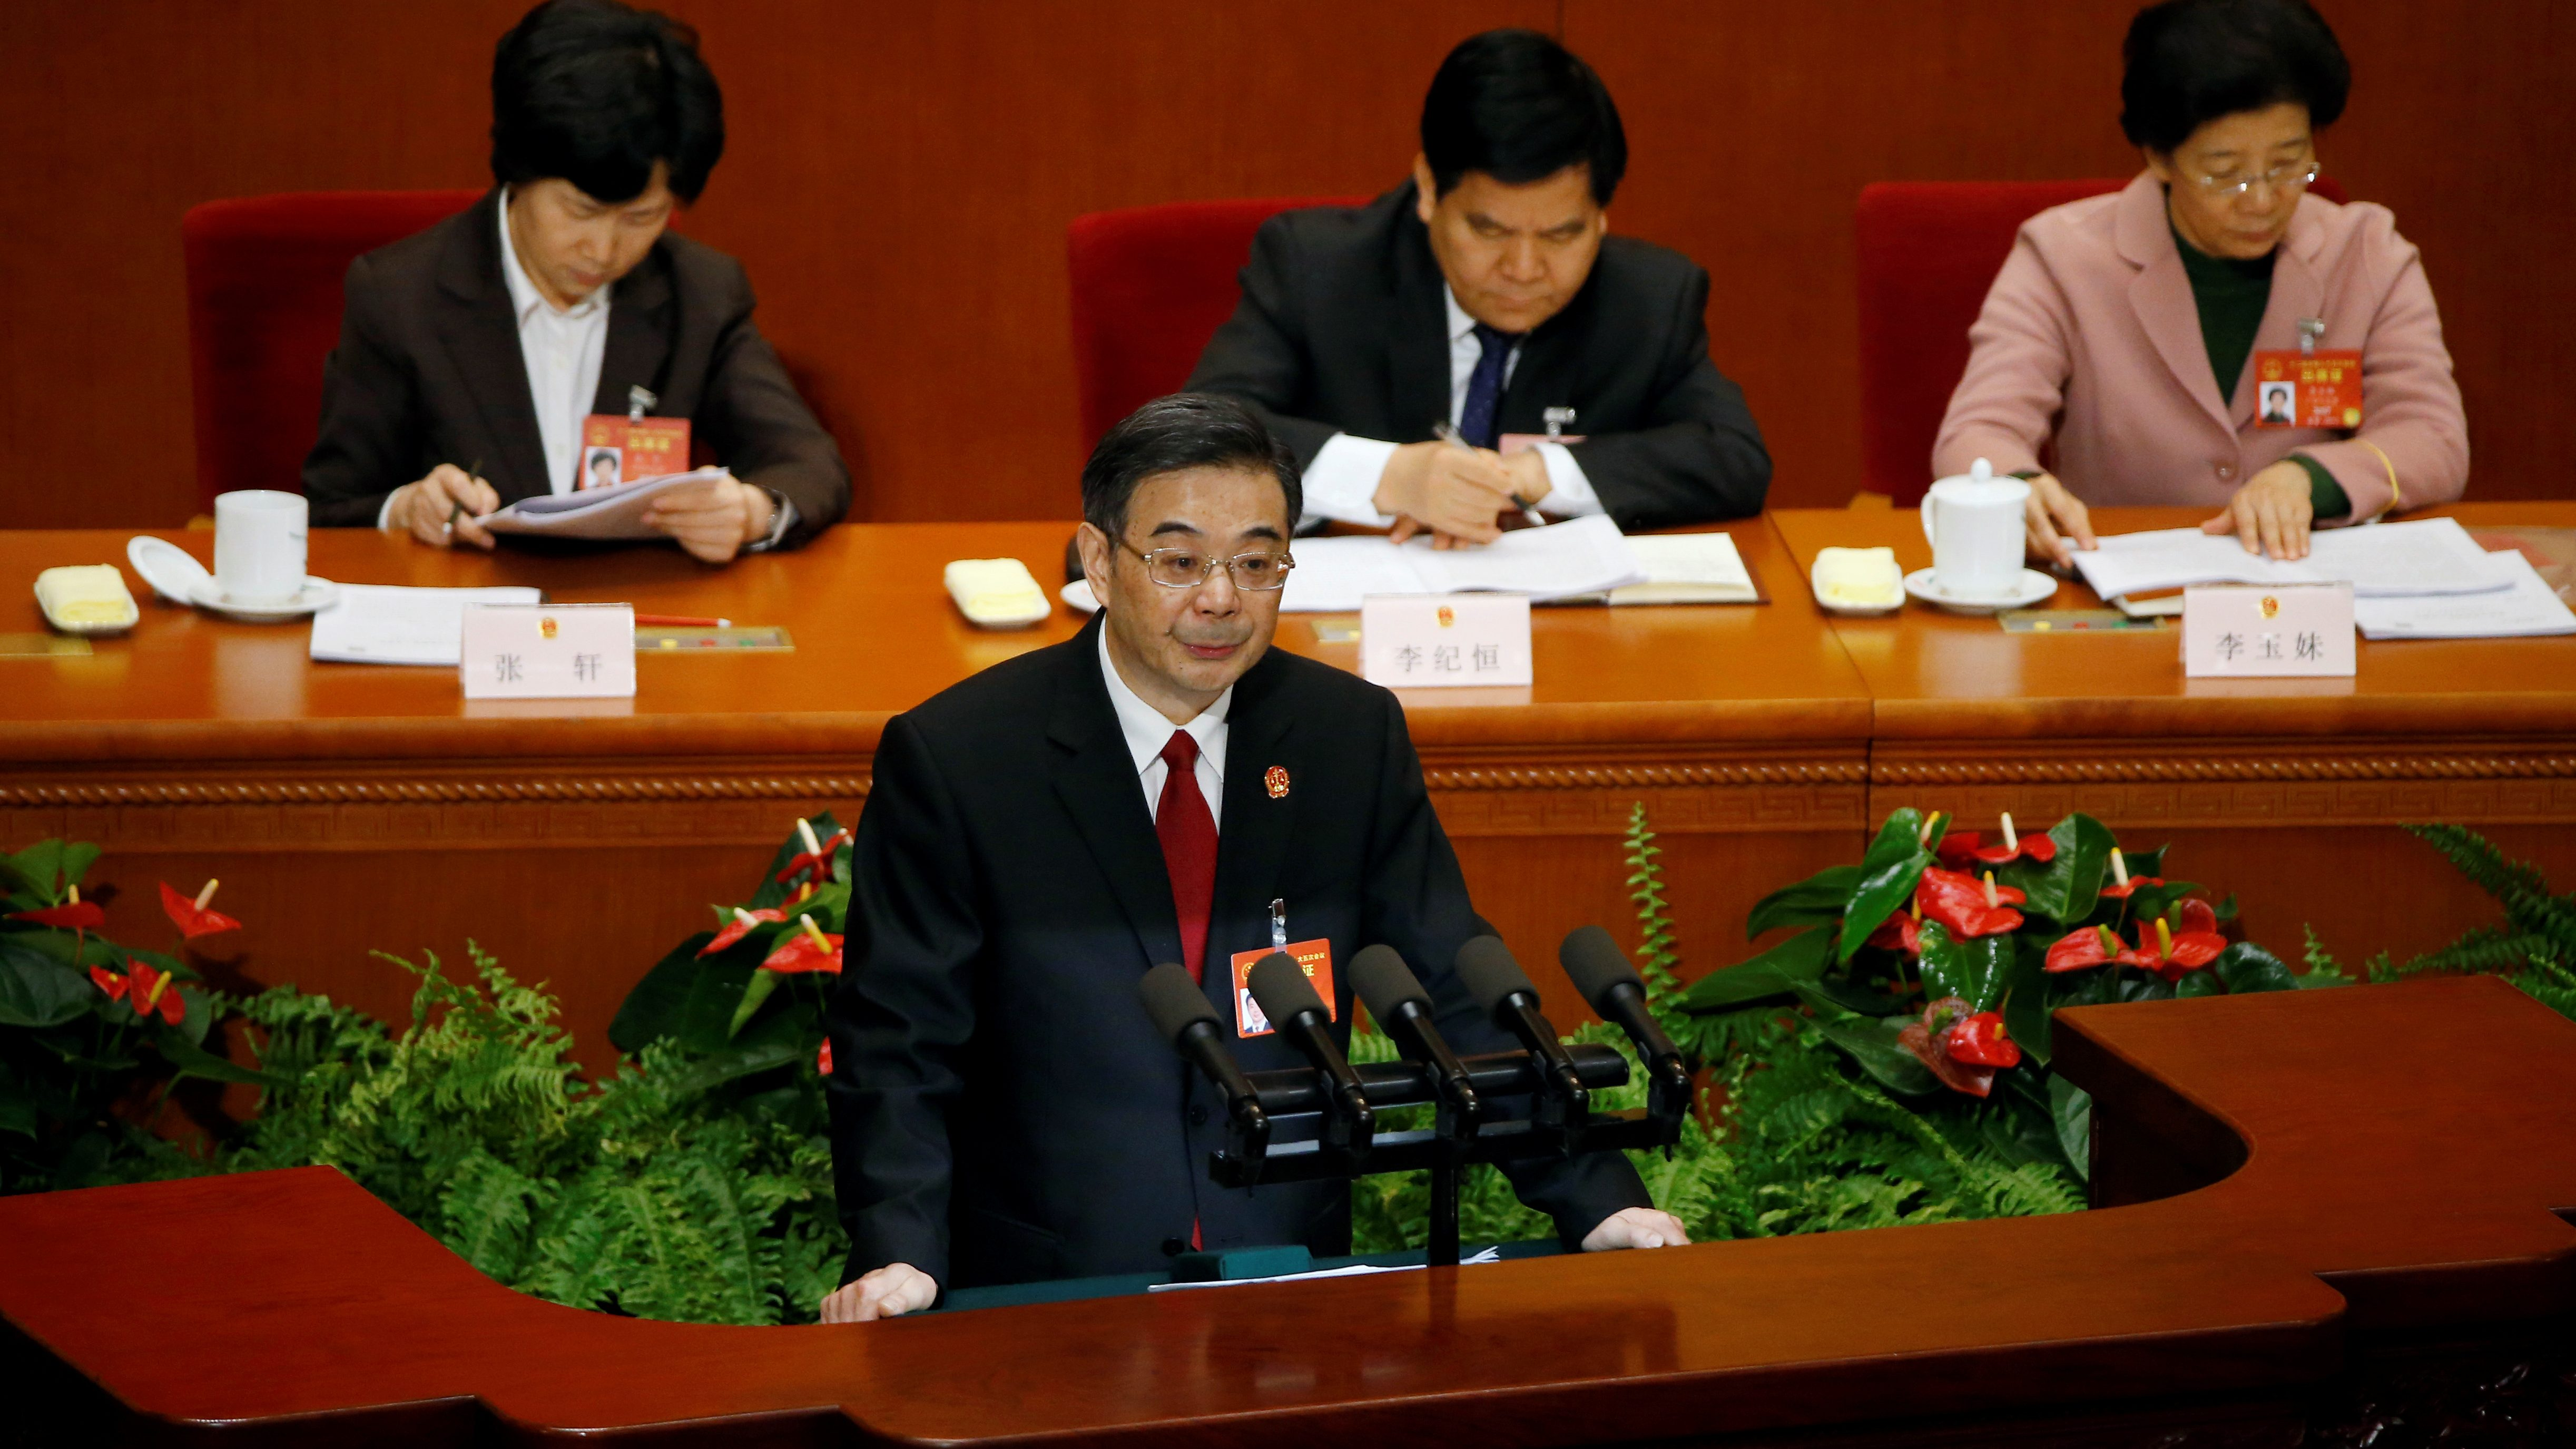 Zhou Qiang, President of China's Supreme People's Court, gives a speech during the third plenary session of the National People's Congress (NPC) at the Great Hall of the People, in Beijing, China, March 12, 2017.